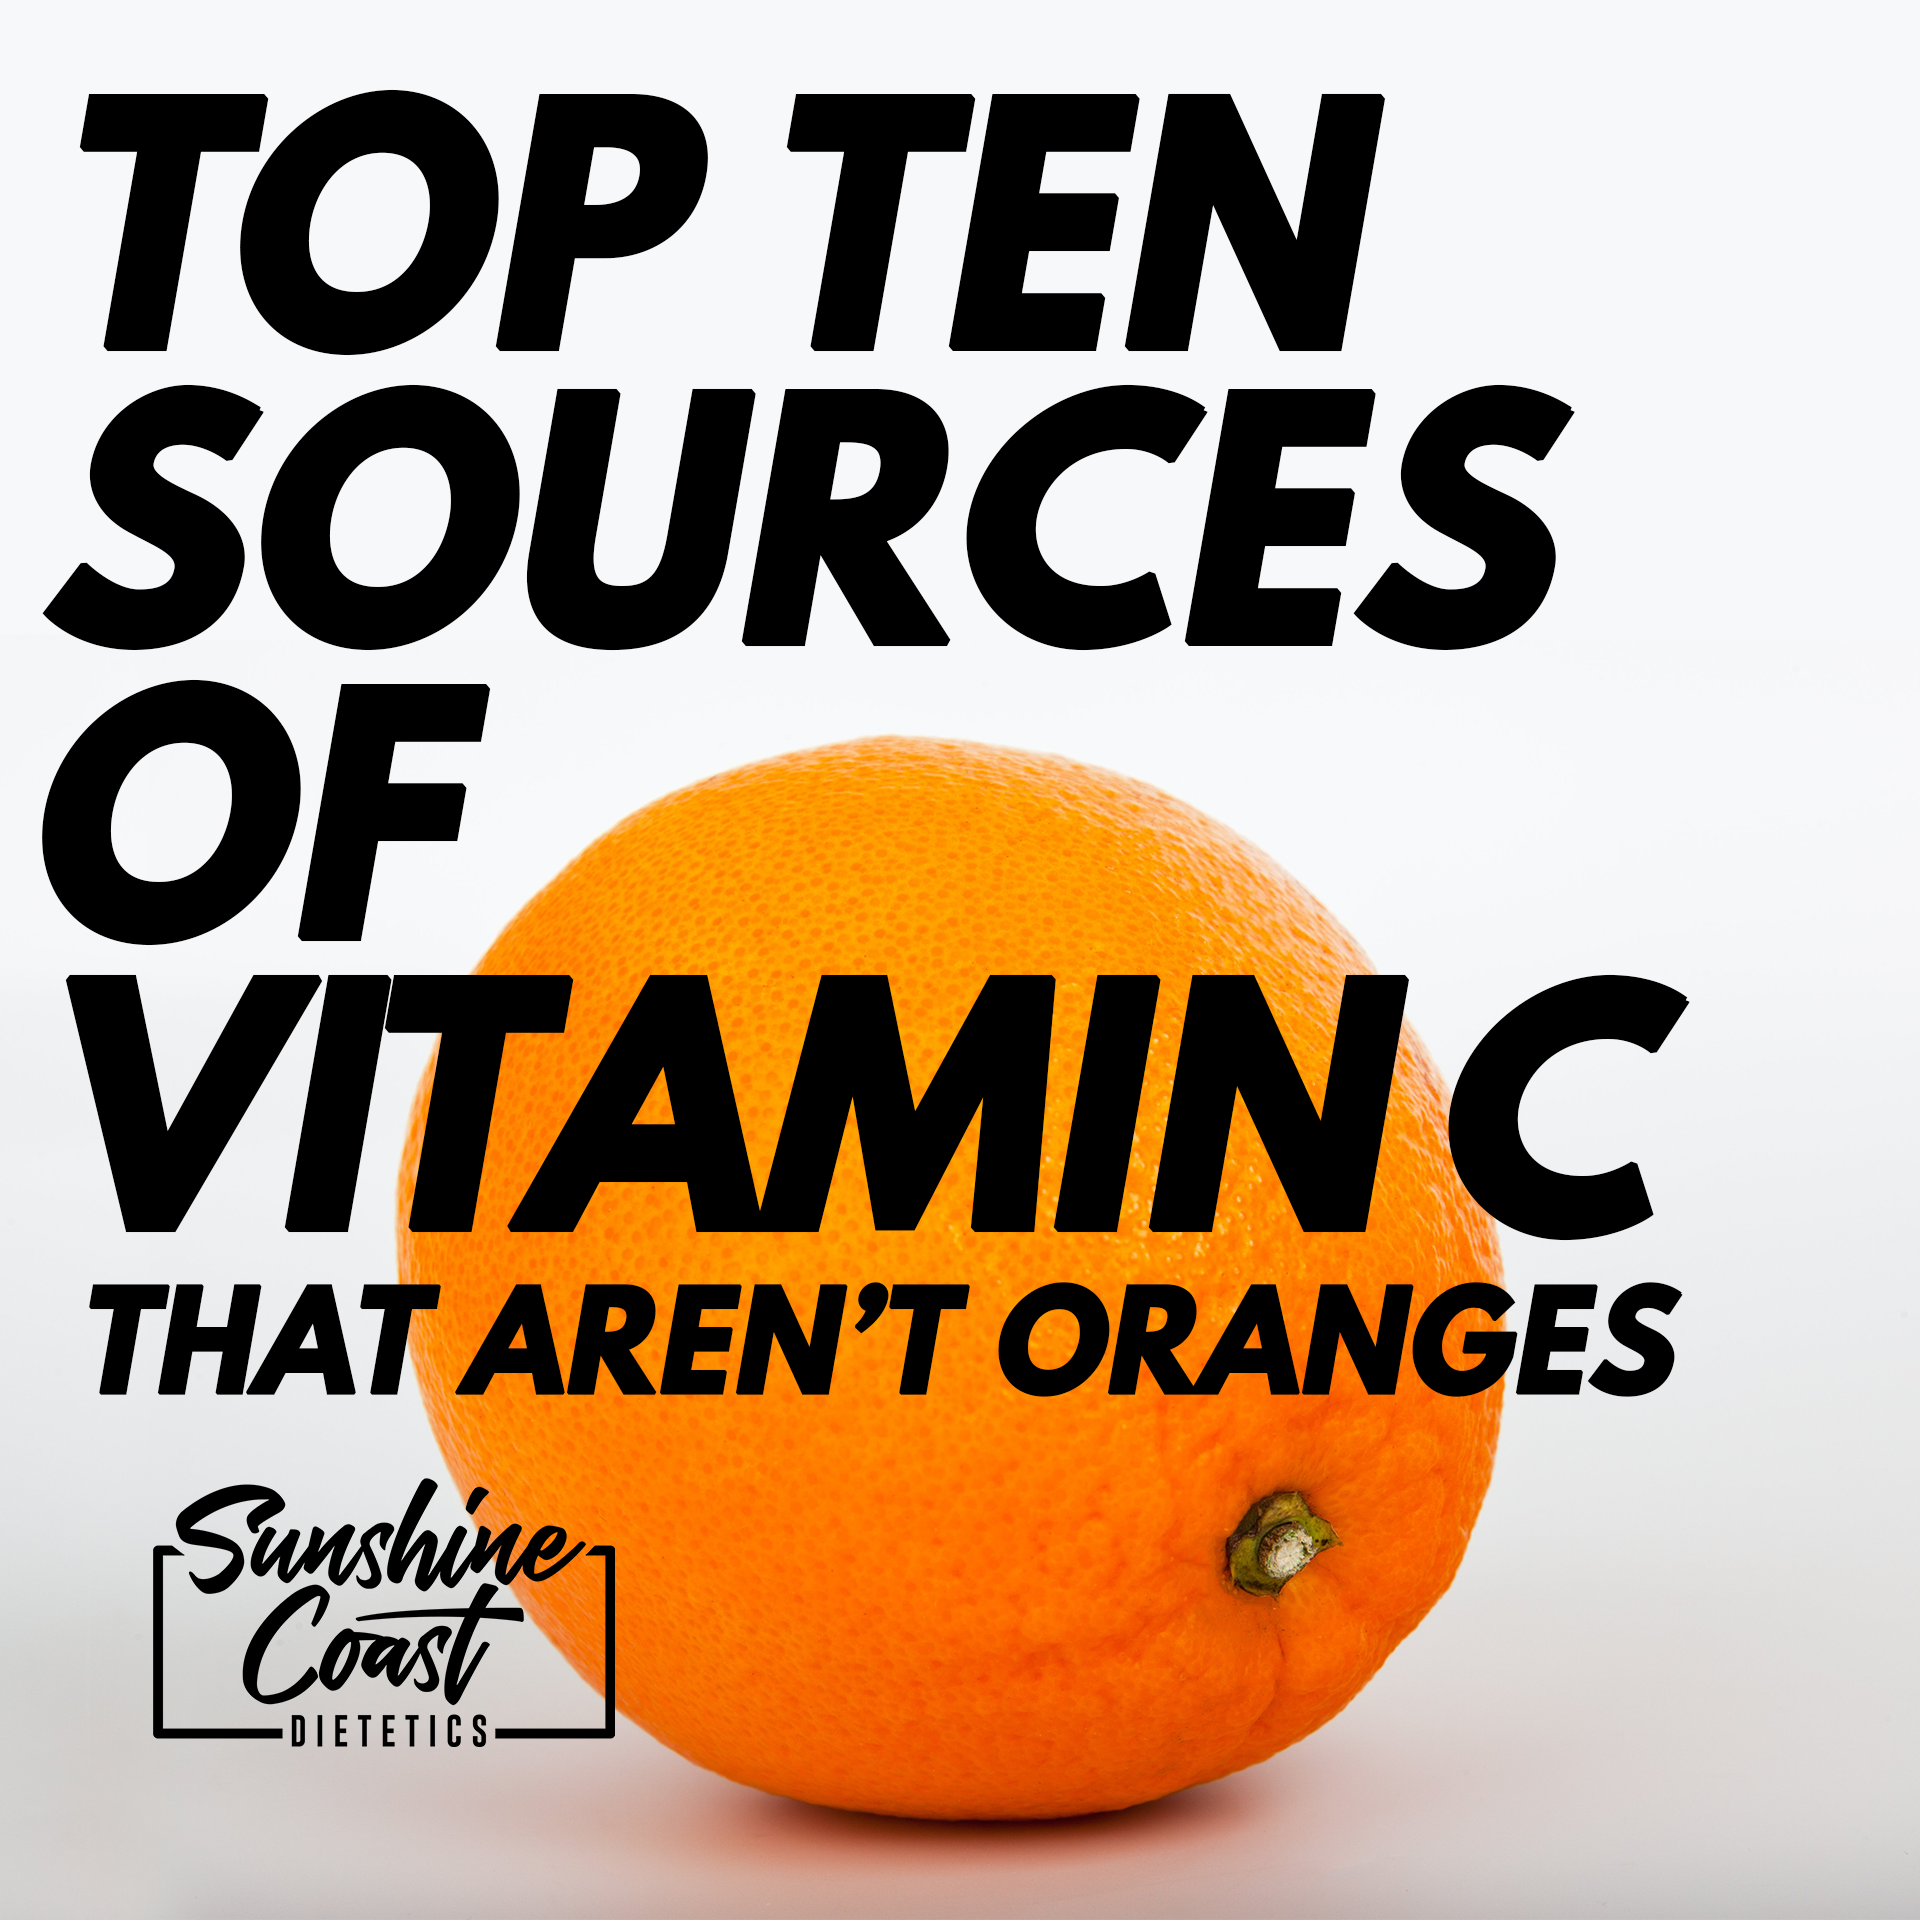 Top Ten Sources of Vitamin C That Aren't an Orange